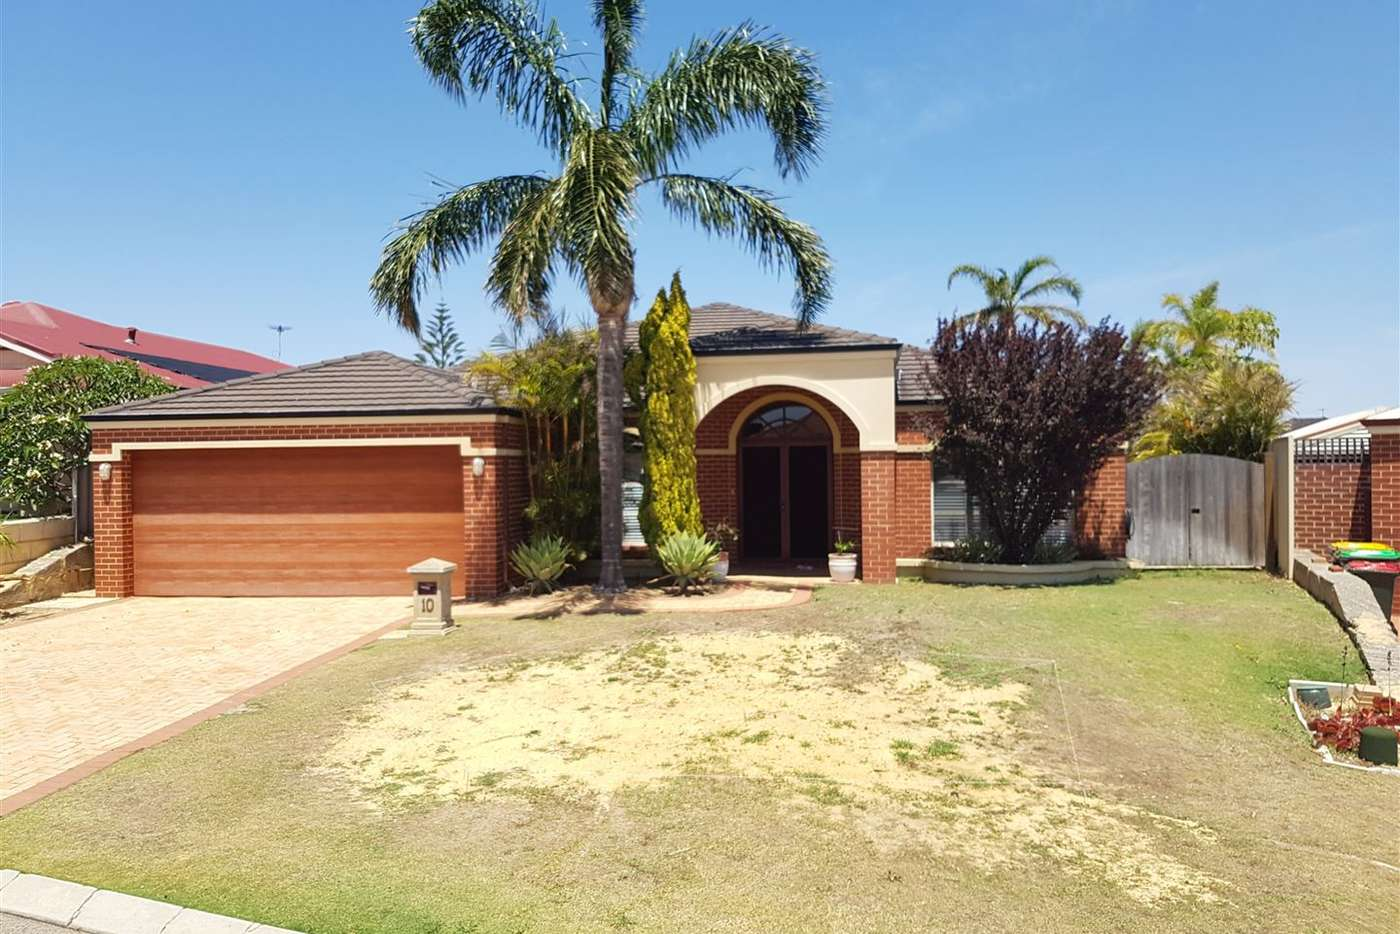 Main view of Homely house listing, 10 Paragon Rise, Currambine WA 6028